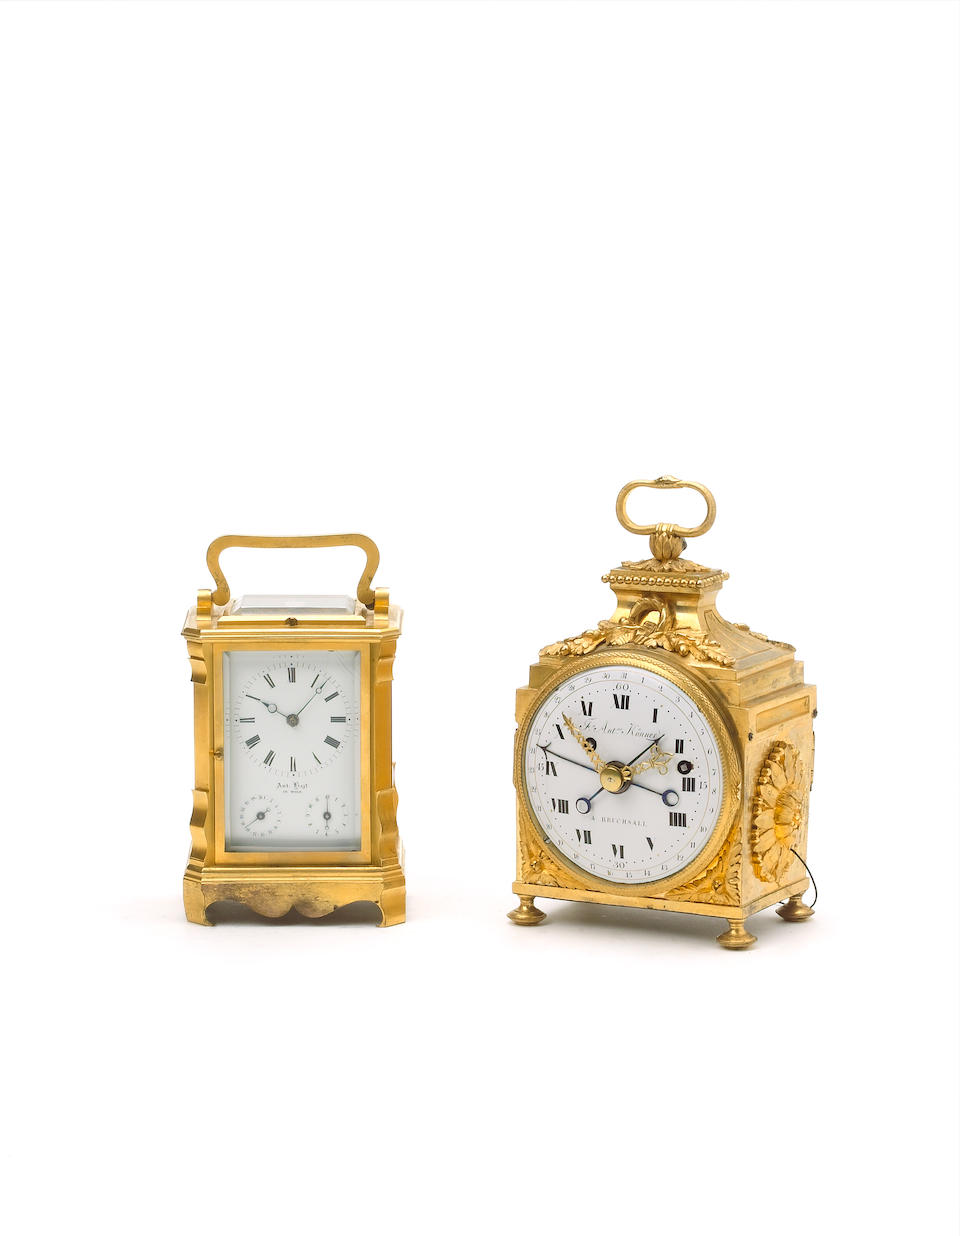 A late 19th century French gilt brass grande-sonnerie striking carriage clock Numbered 6214